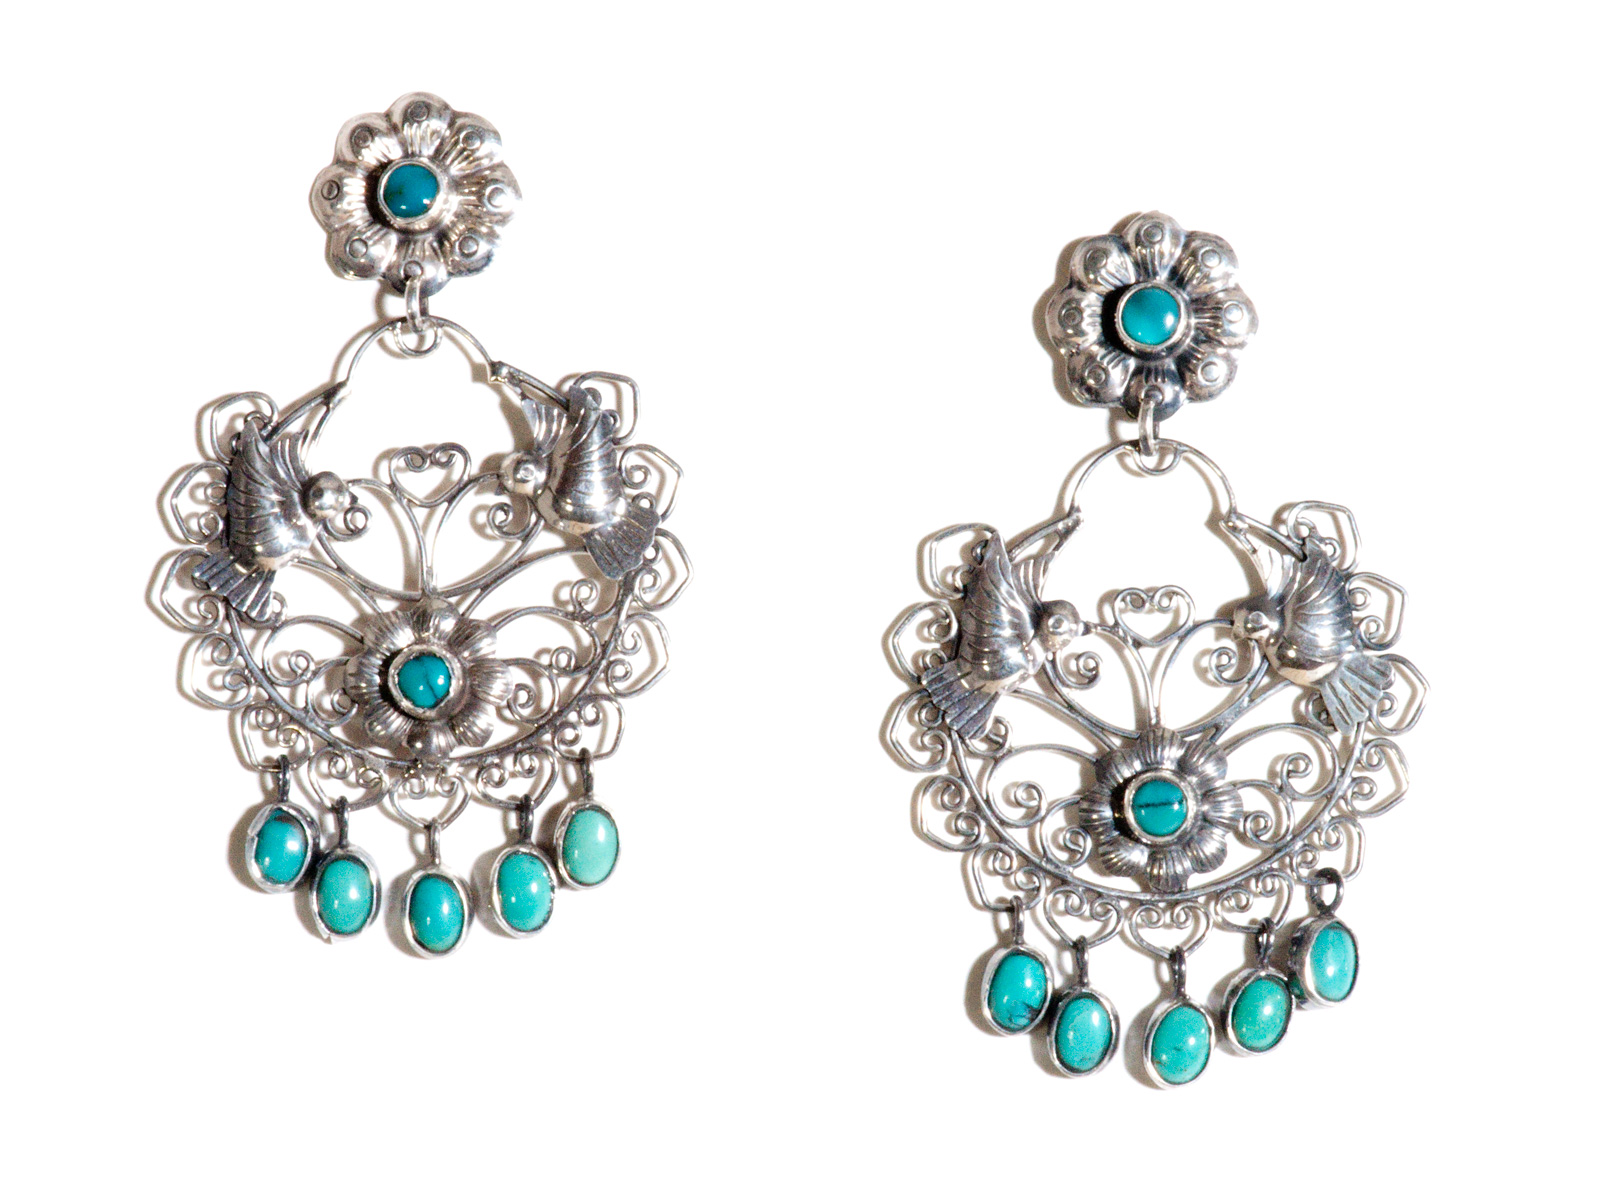 16ad7371a Filigree Earrings in Sterling Silver and Turquoise by Federico